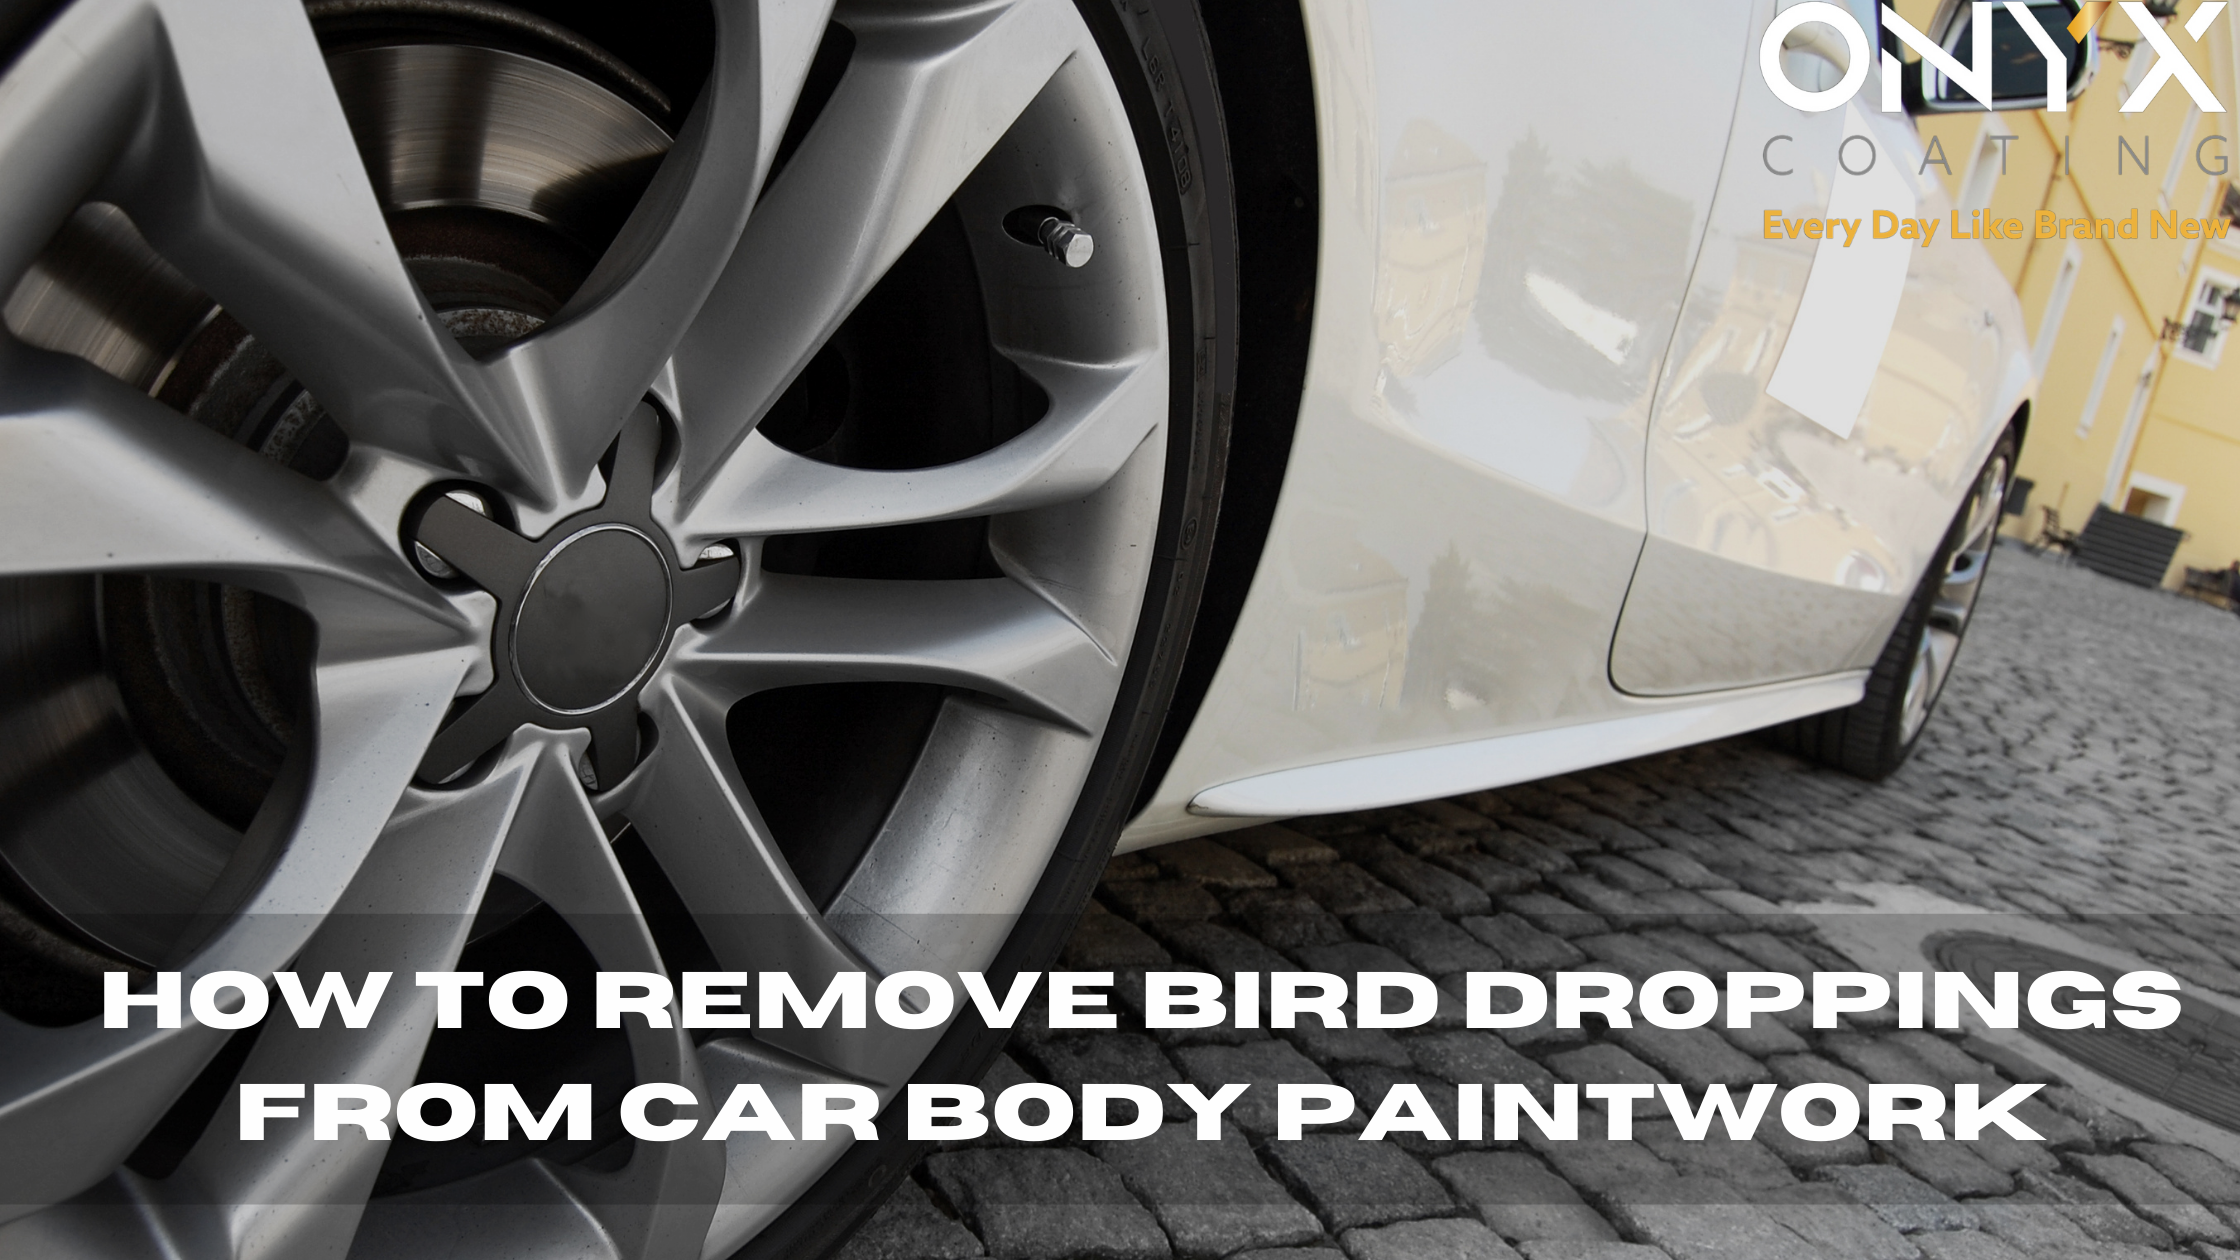 How to remove bird droppings from car body paintwork